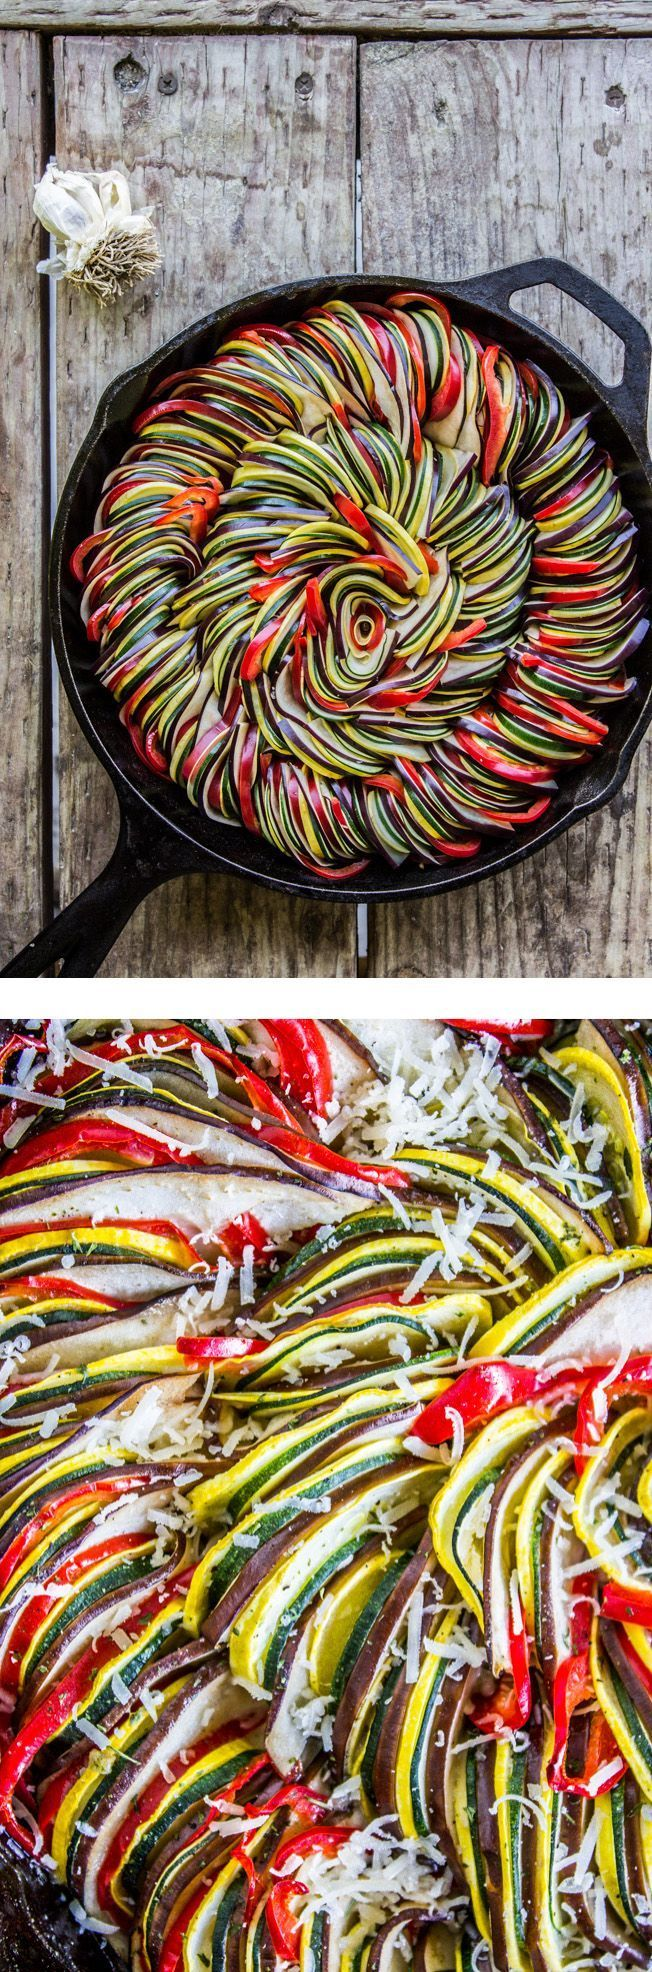 Roasted Garlic Ratatouille #ratatouille #healthy #appetizer